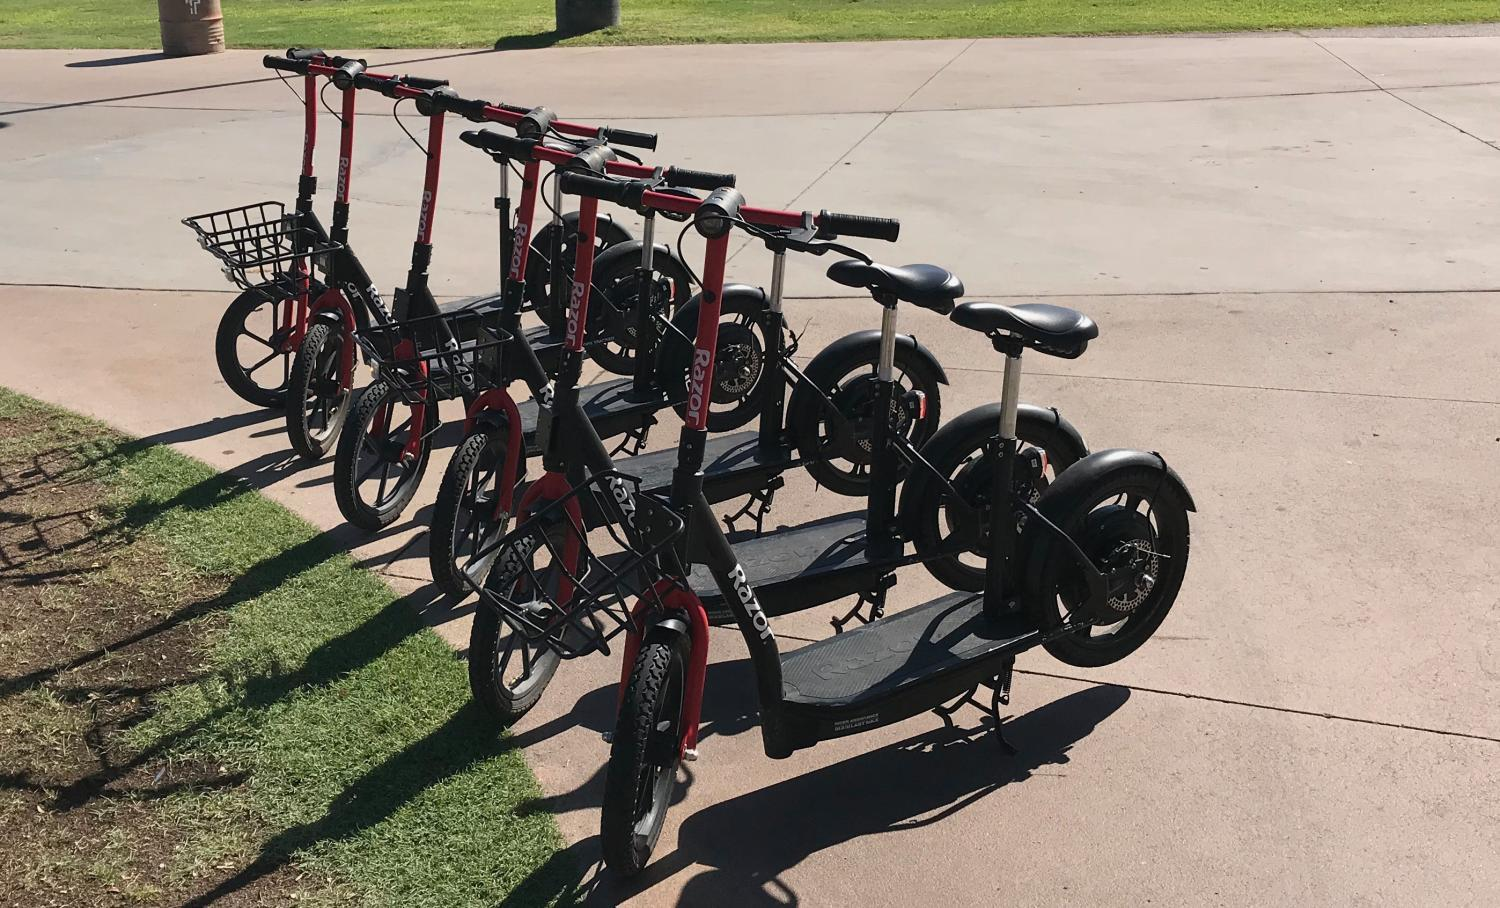 Scooters at Tempe Beach Park